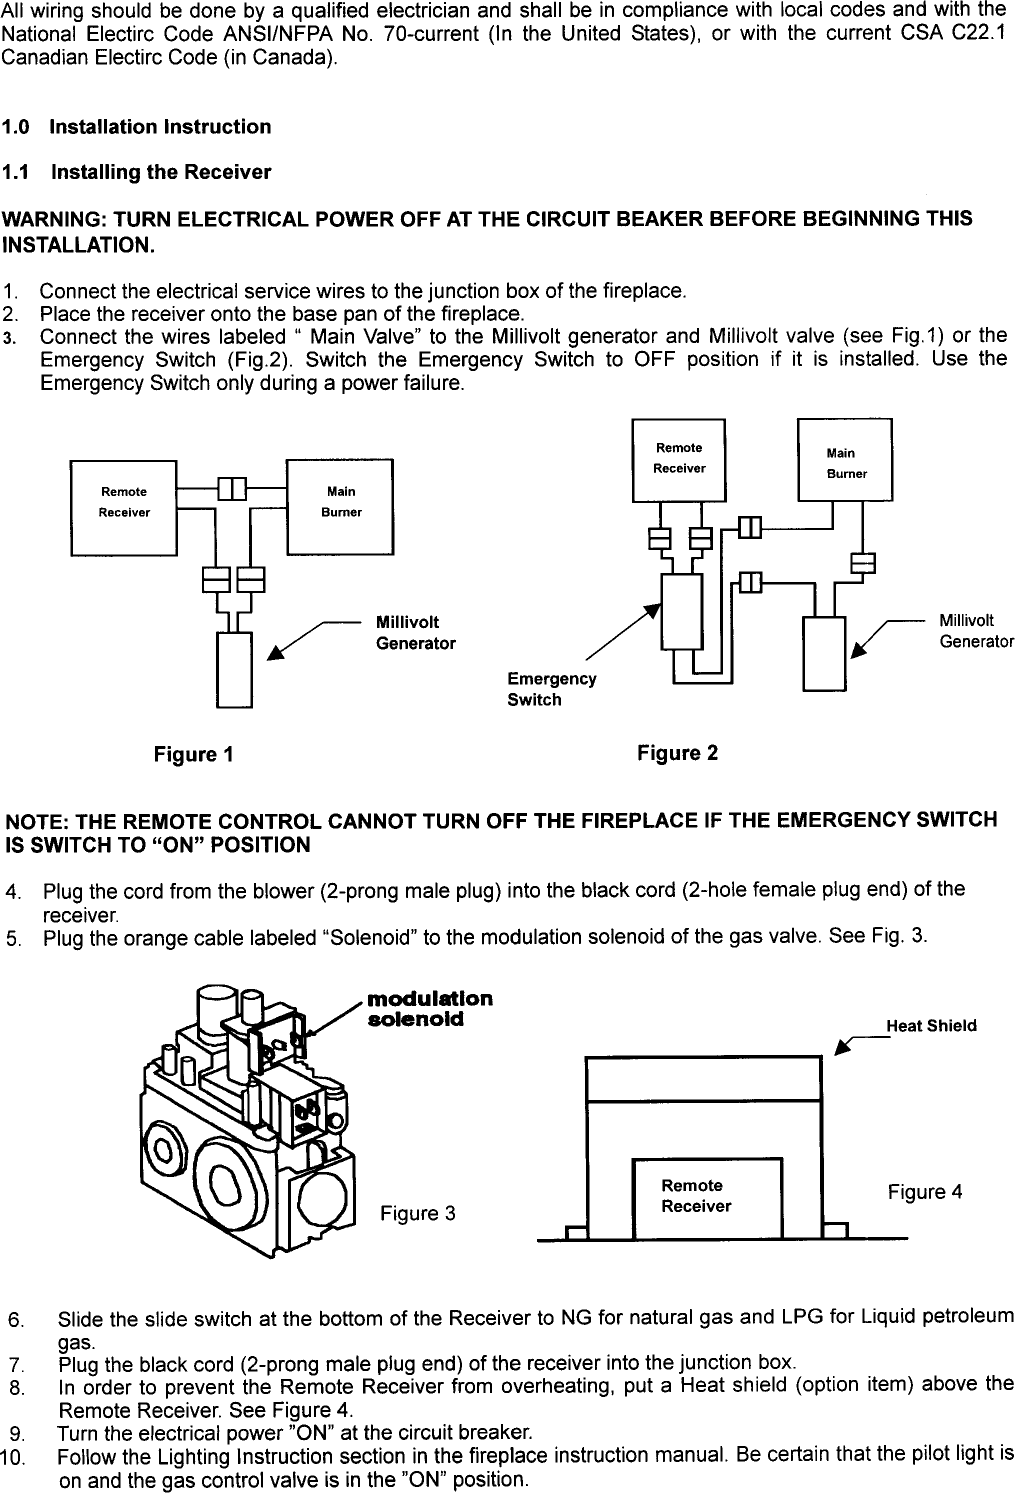 [DVZP_7254]   LM_2632] Fireplace Gas Valve Wiring On Generator Installation Wiring Diagram  Download Diagram | Wiring Diagram For A Gas Fireplace Blower |  | Pschts Phil Vira Cular Trofu Oidei Oupli Nect Dupl Ynthe Rally Aesth Oper  Vira Mohammedshrine Librar Wiring 101